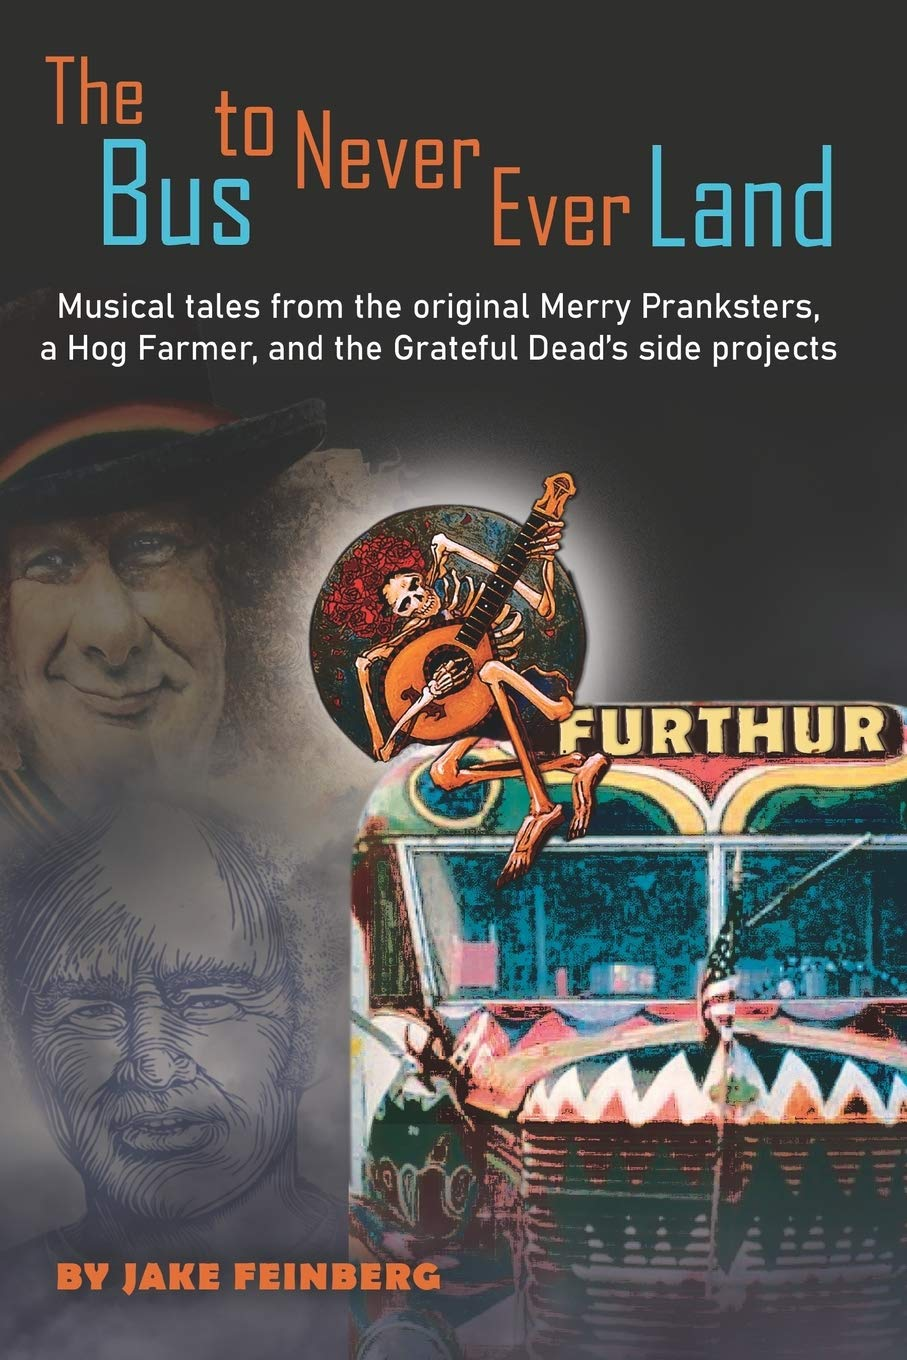 The Bus to Never Ever Land: Musical Tales from the Original Merry Pranksters, a Hog Farmer, and the Grateful Dead's Side Projects